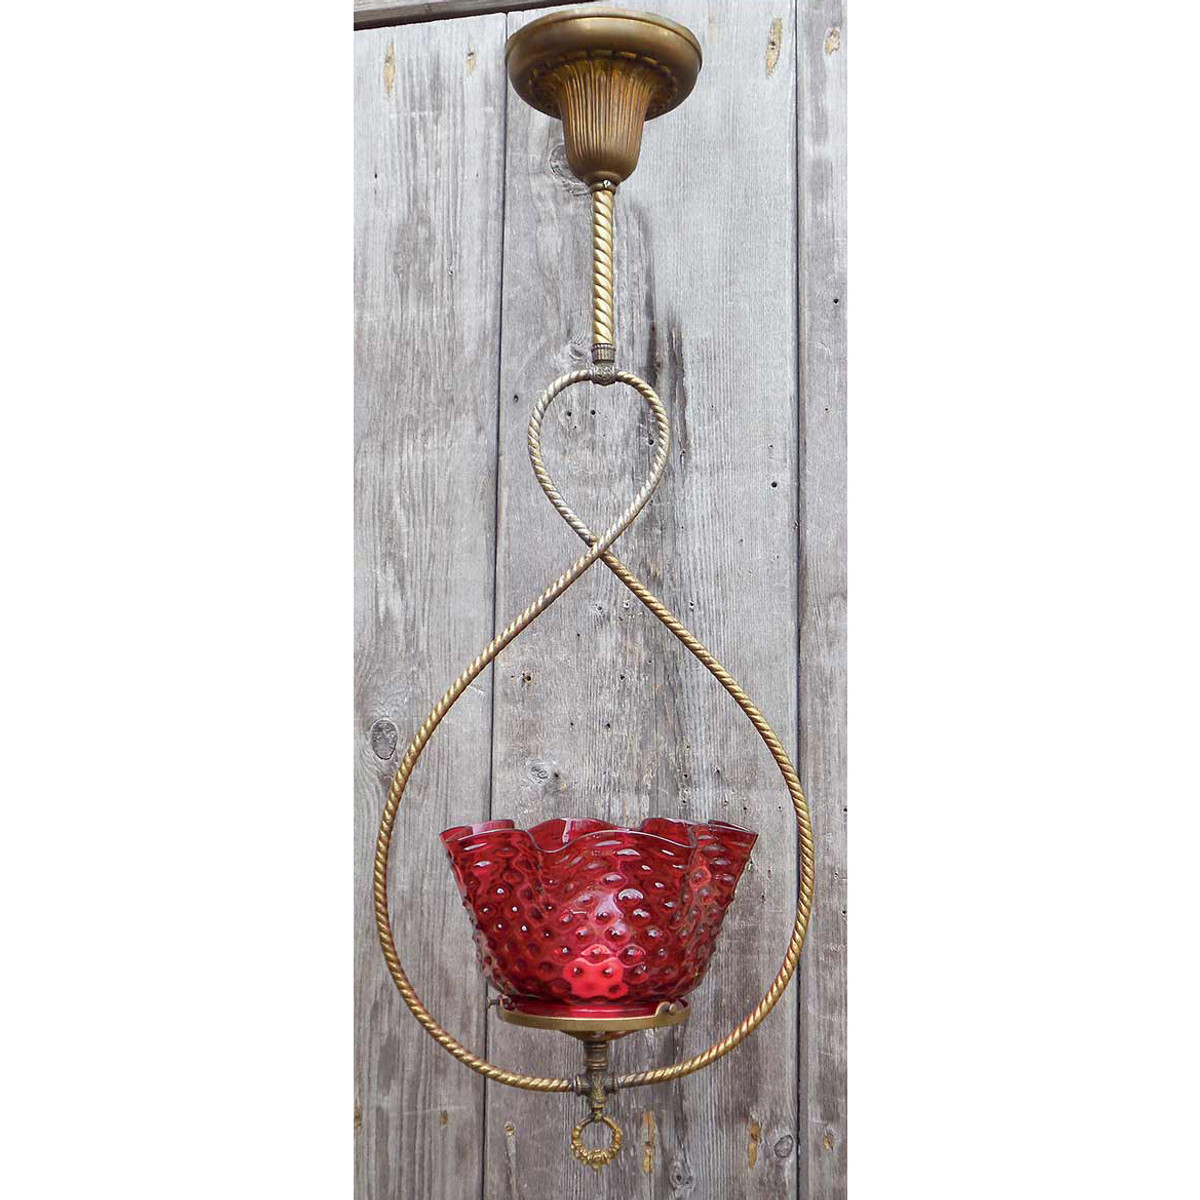 606329 - Antique Victorian Gas Ceiling Light Fixture with Cranberry Hobnail Glass